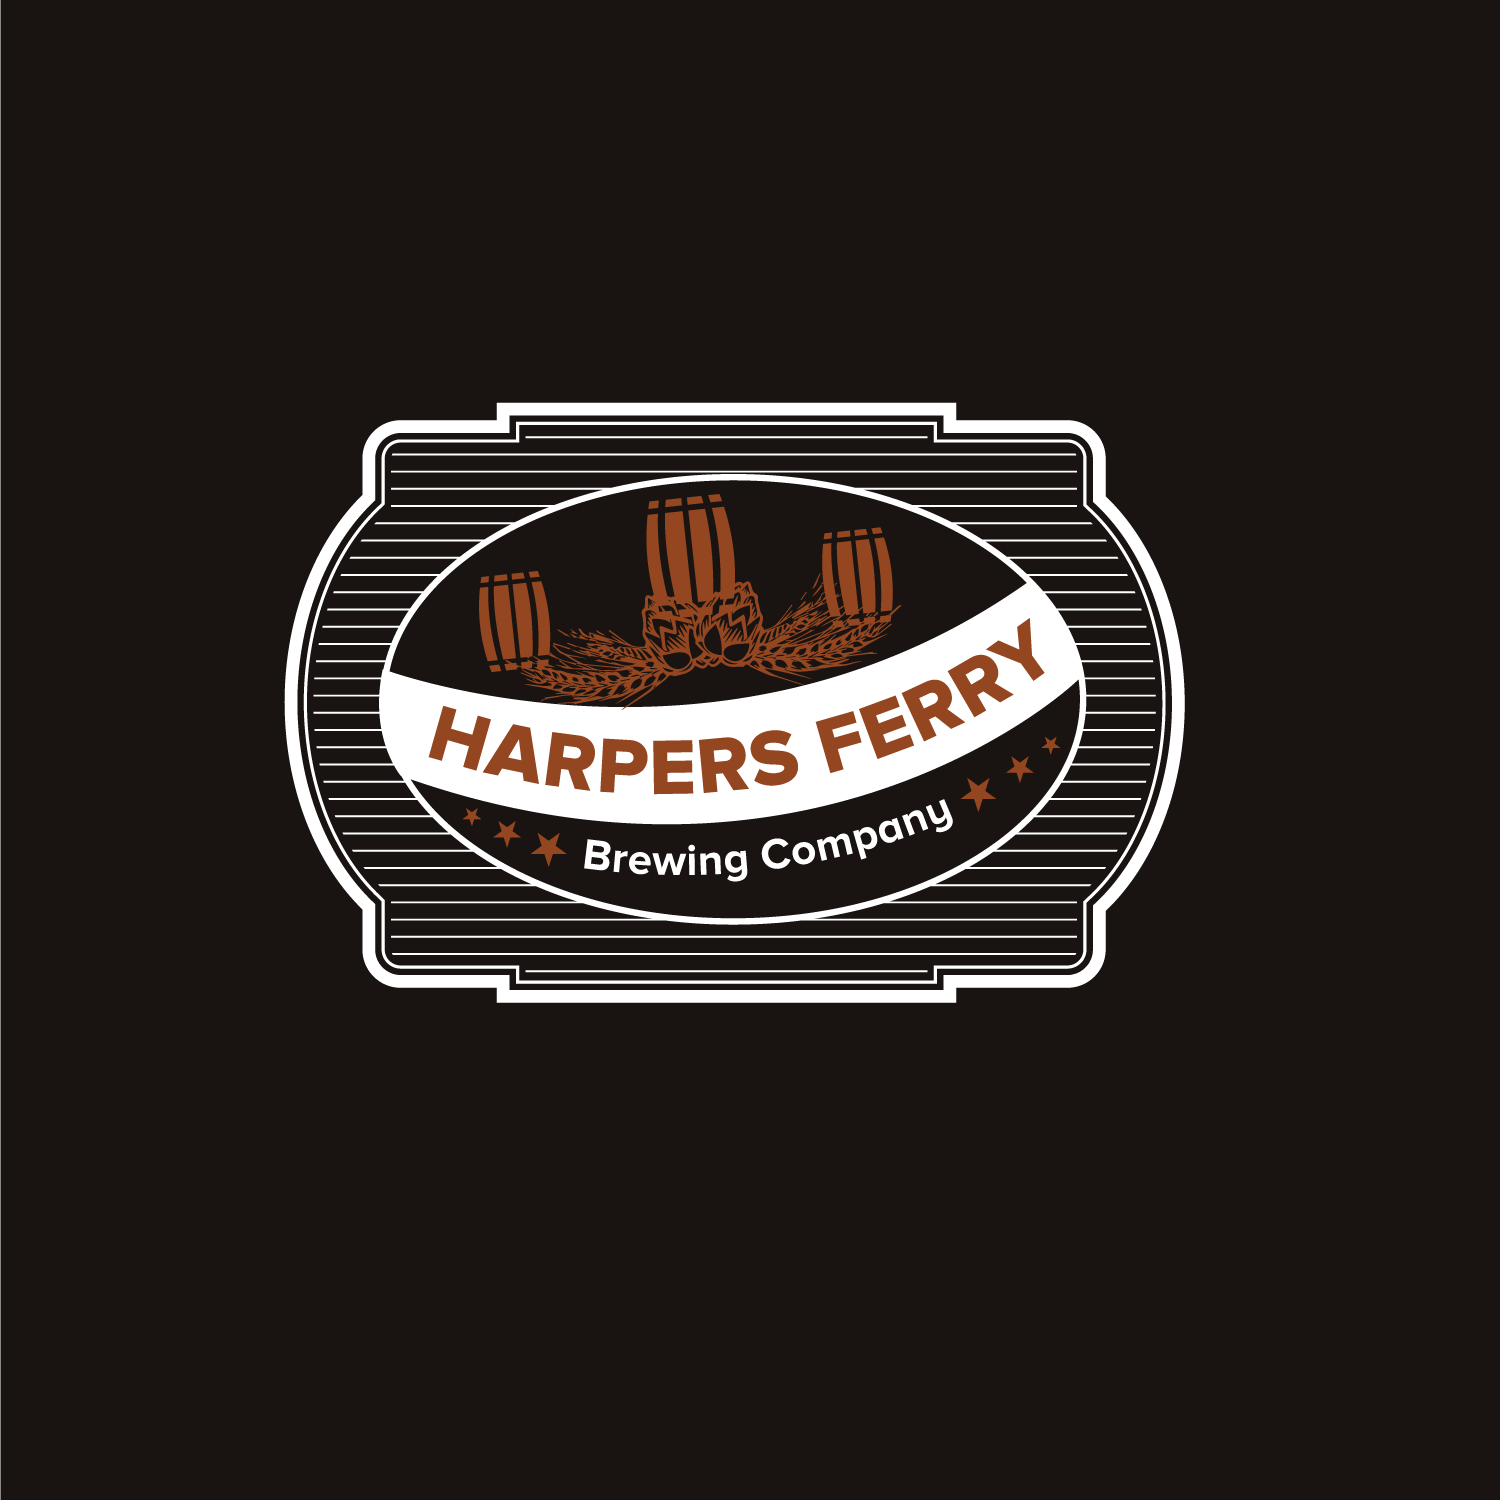 Logo Design by Bac Huu - Entry No. 12 in the Logo Design Contest Unique Logo Design Wanted for Harpers ferry brewing company.